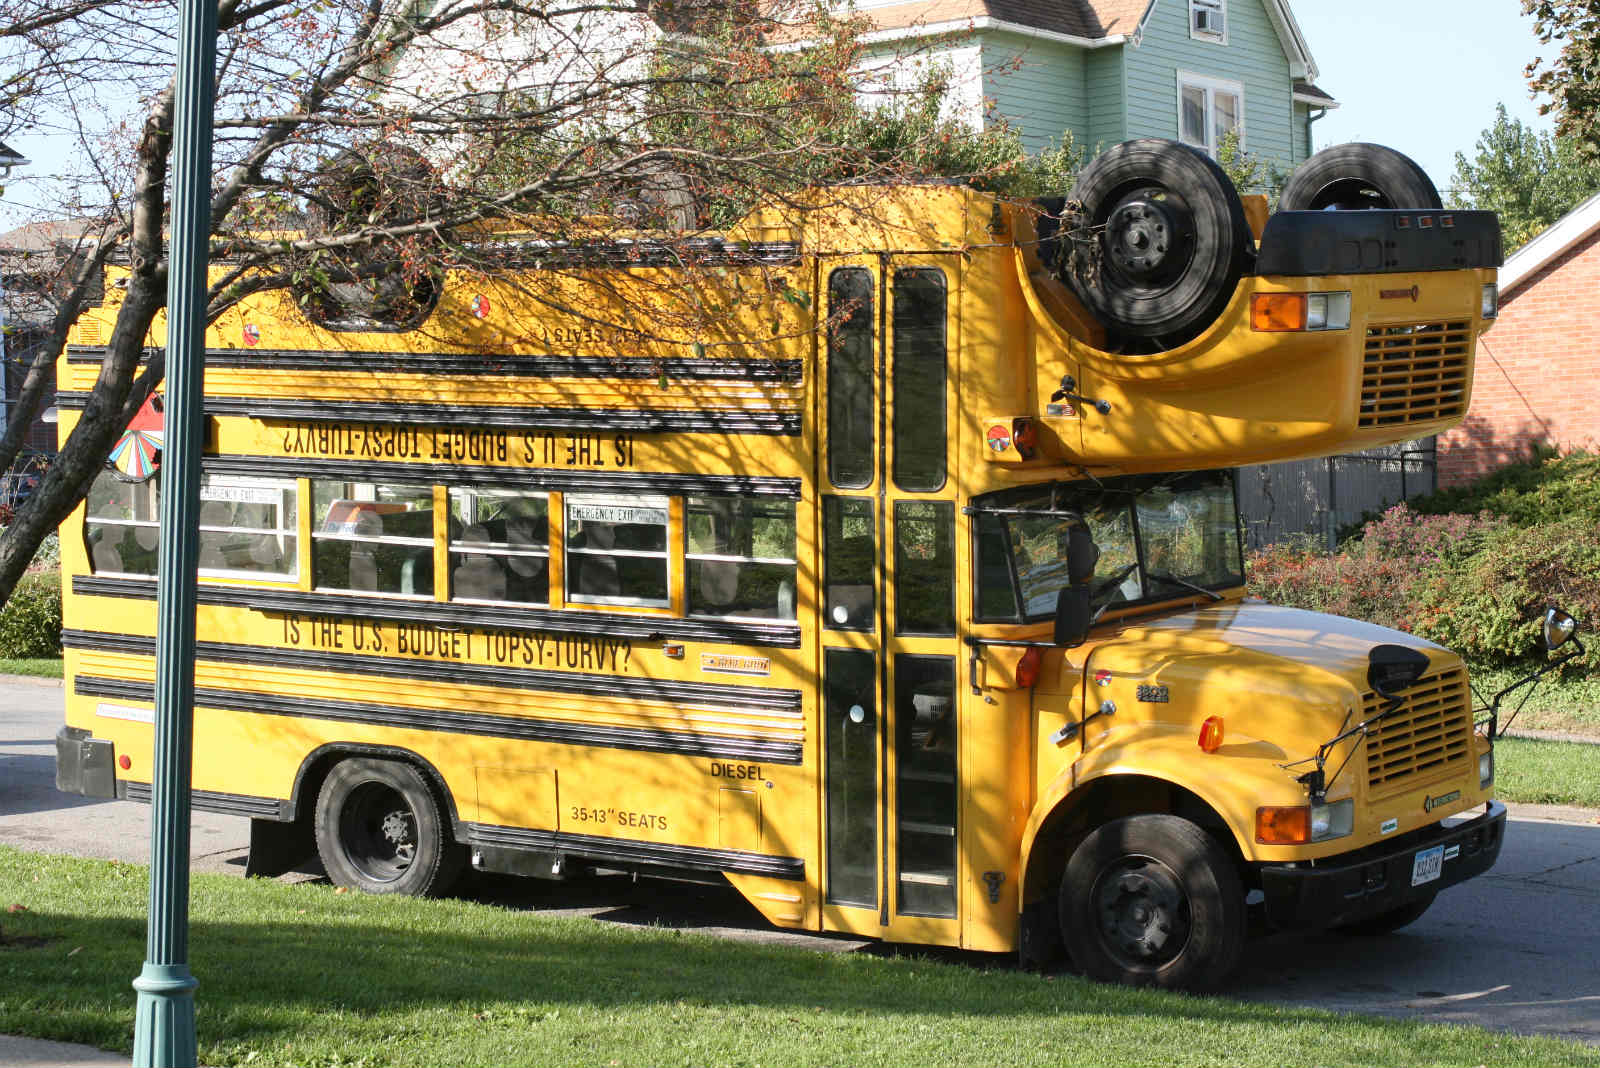 Hippie Buses Hippie School Bus No Car No Fun Muscle Cars And Power Cars